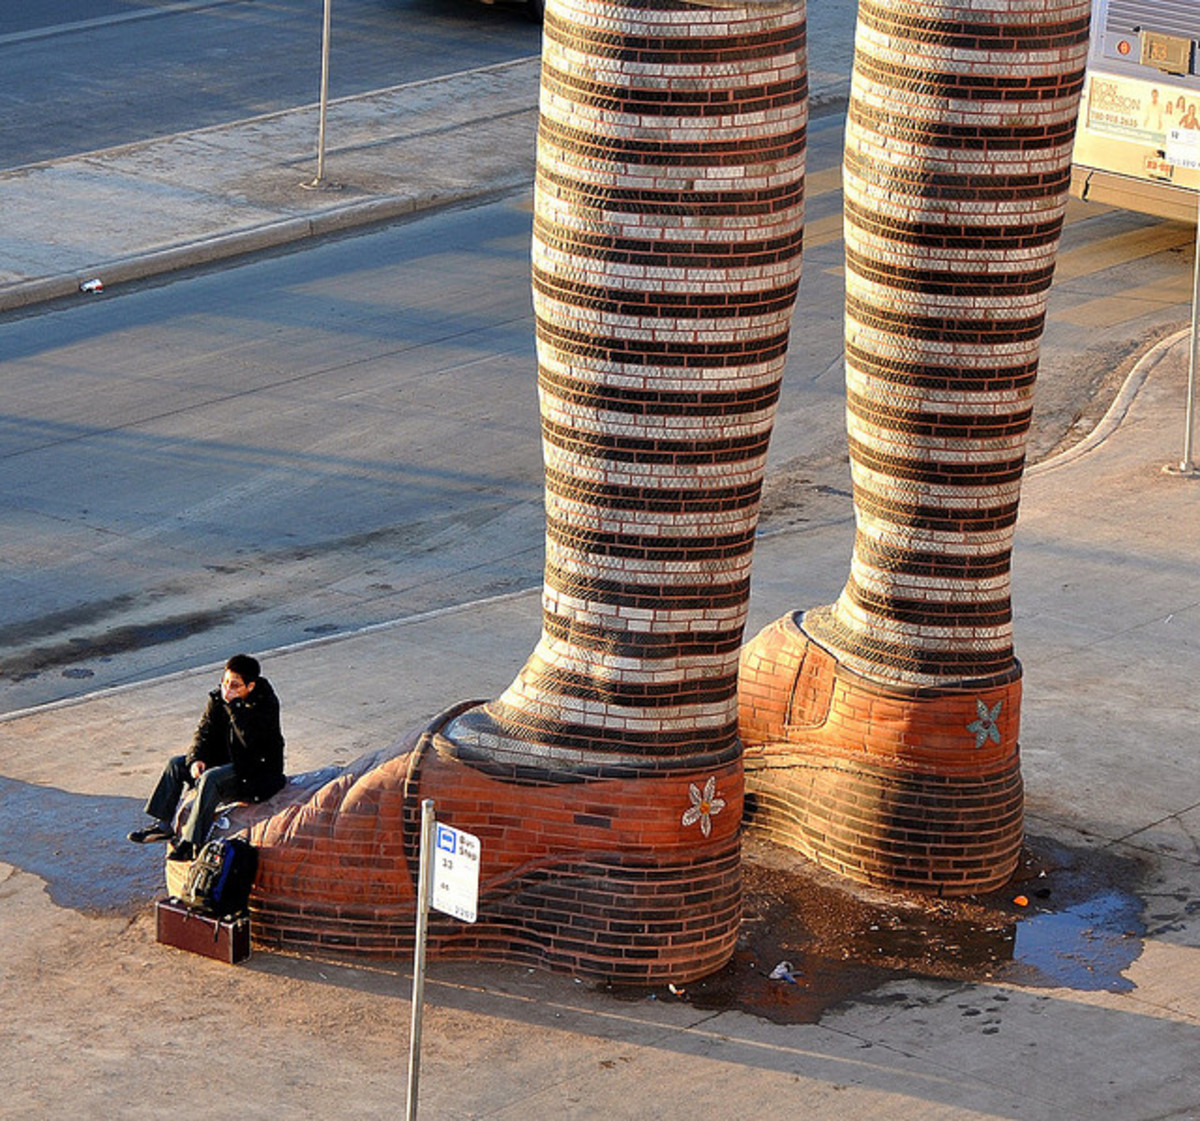 This sculpture is made of bricks and each leg is 20 feet tall. It is located in the middle of Southgate Transit Centre, Alberta (Canada).